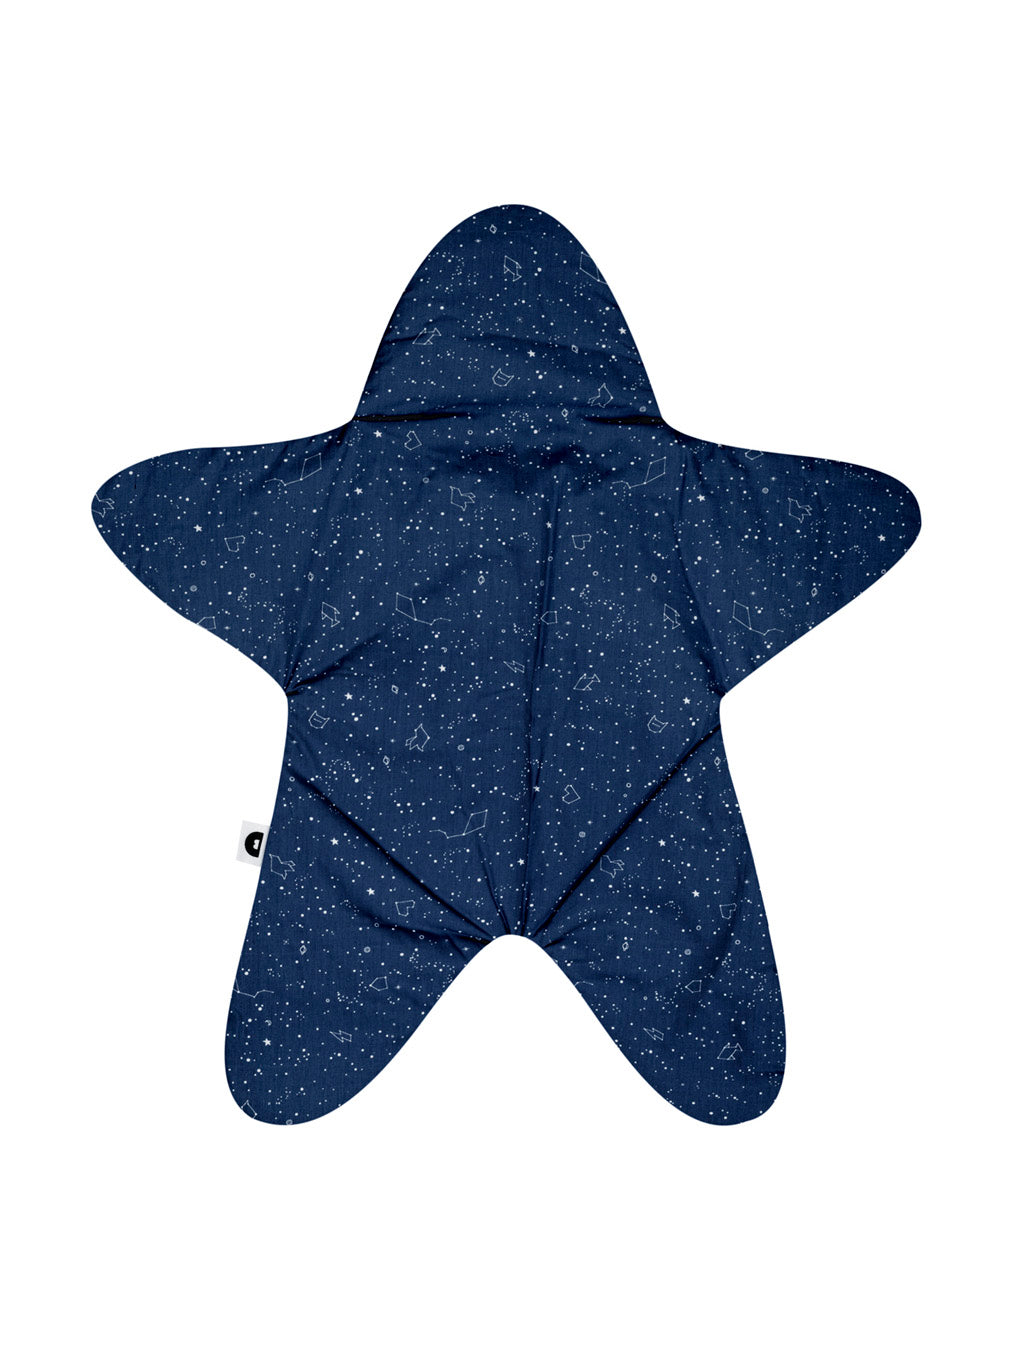 Star in NAVY BLUE (Light) Sleeping Bag  🌟 🎁